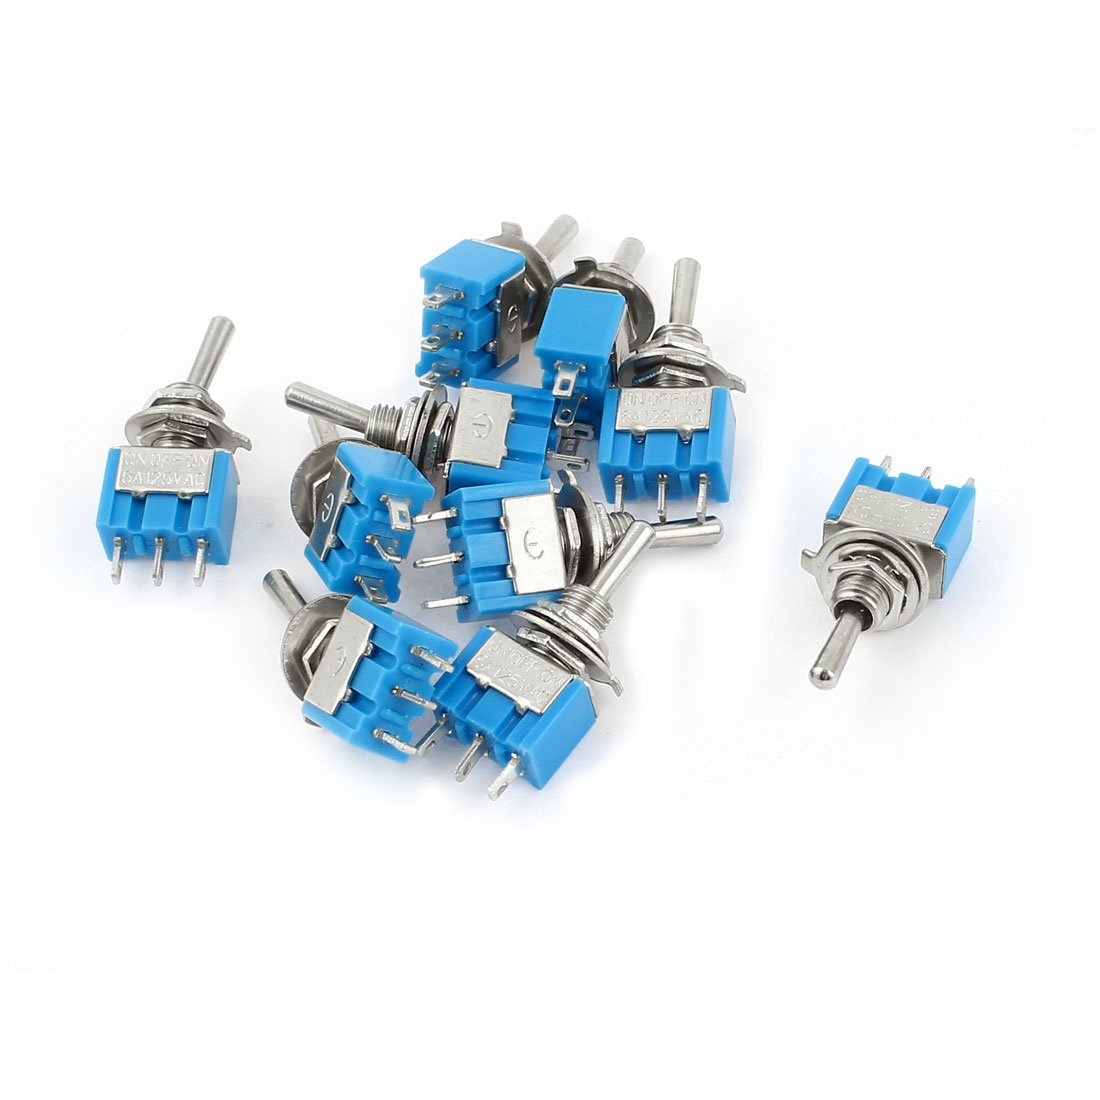 AC125V 6A SPDT 3 Terminals Self Locking On-Off-On Rocker Toggle Switch 10 Pcs